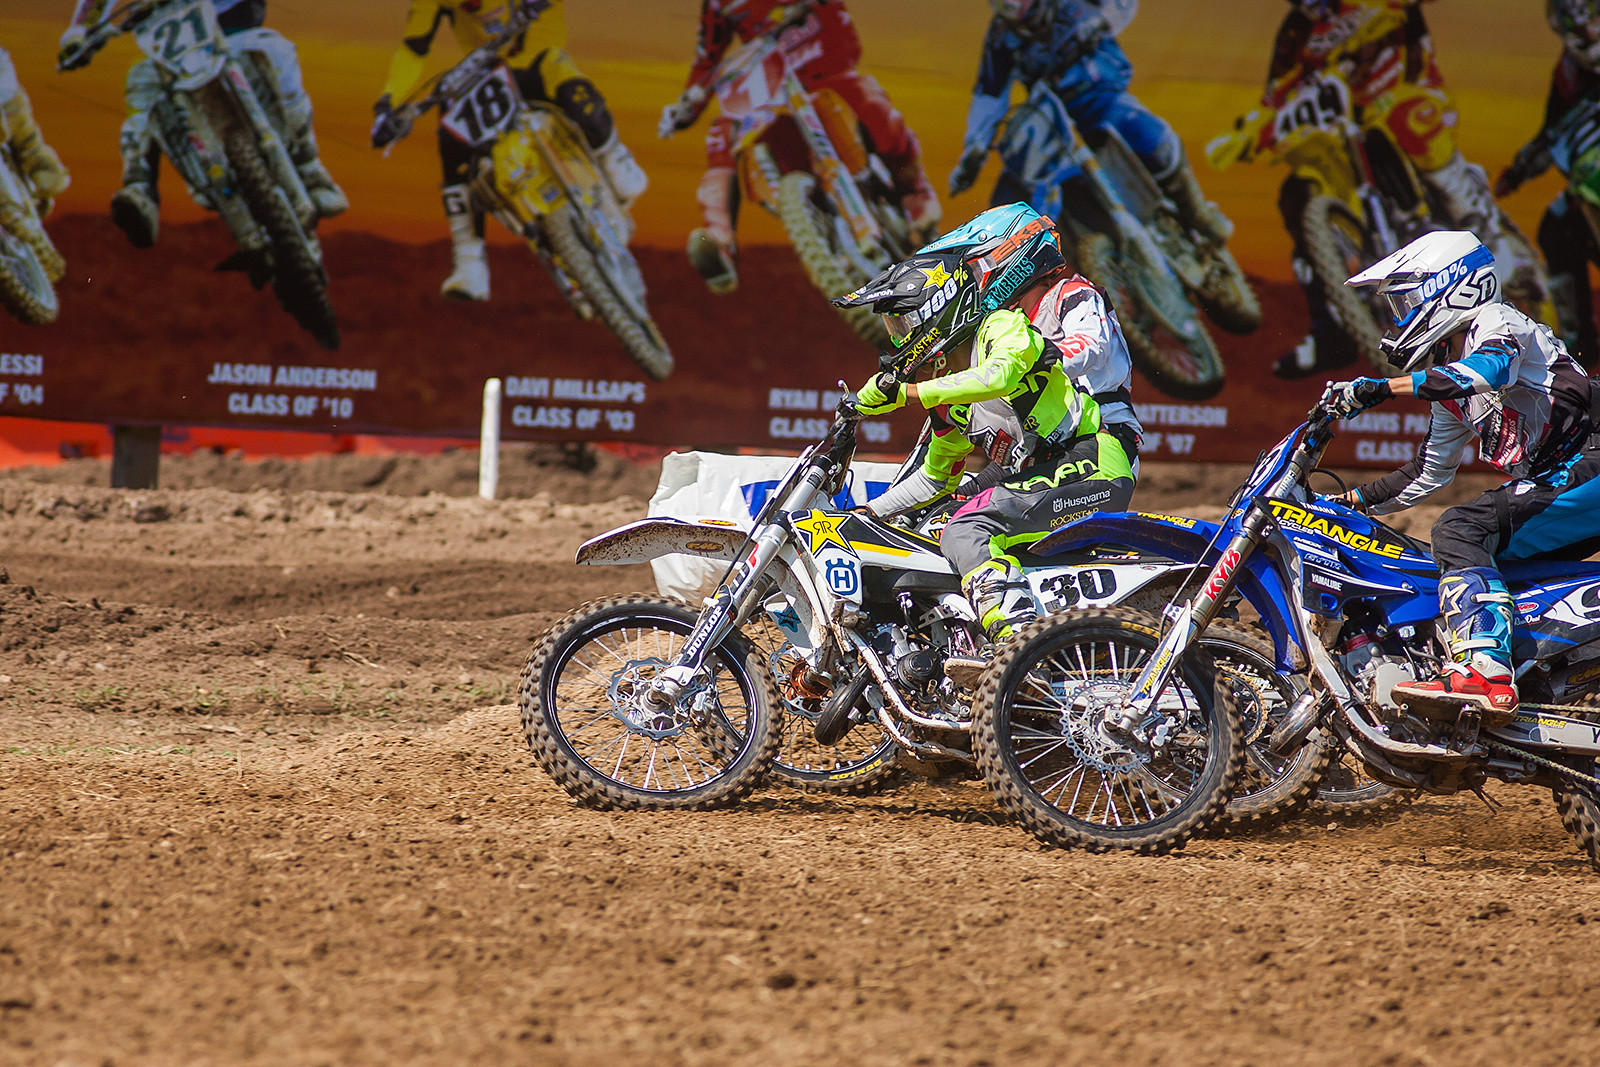 Husqvarna-supported Jalek Swoll rides past some legendary Loretta Lynn's past champions as he pulls the Bell Helmets Holeshot.